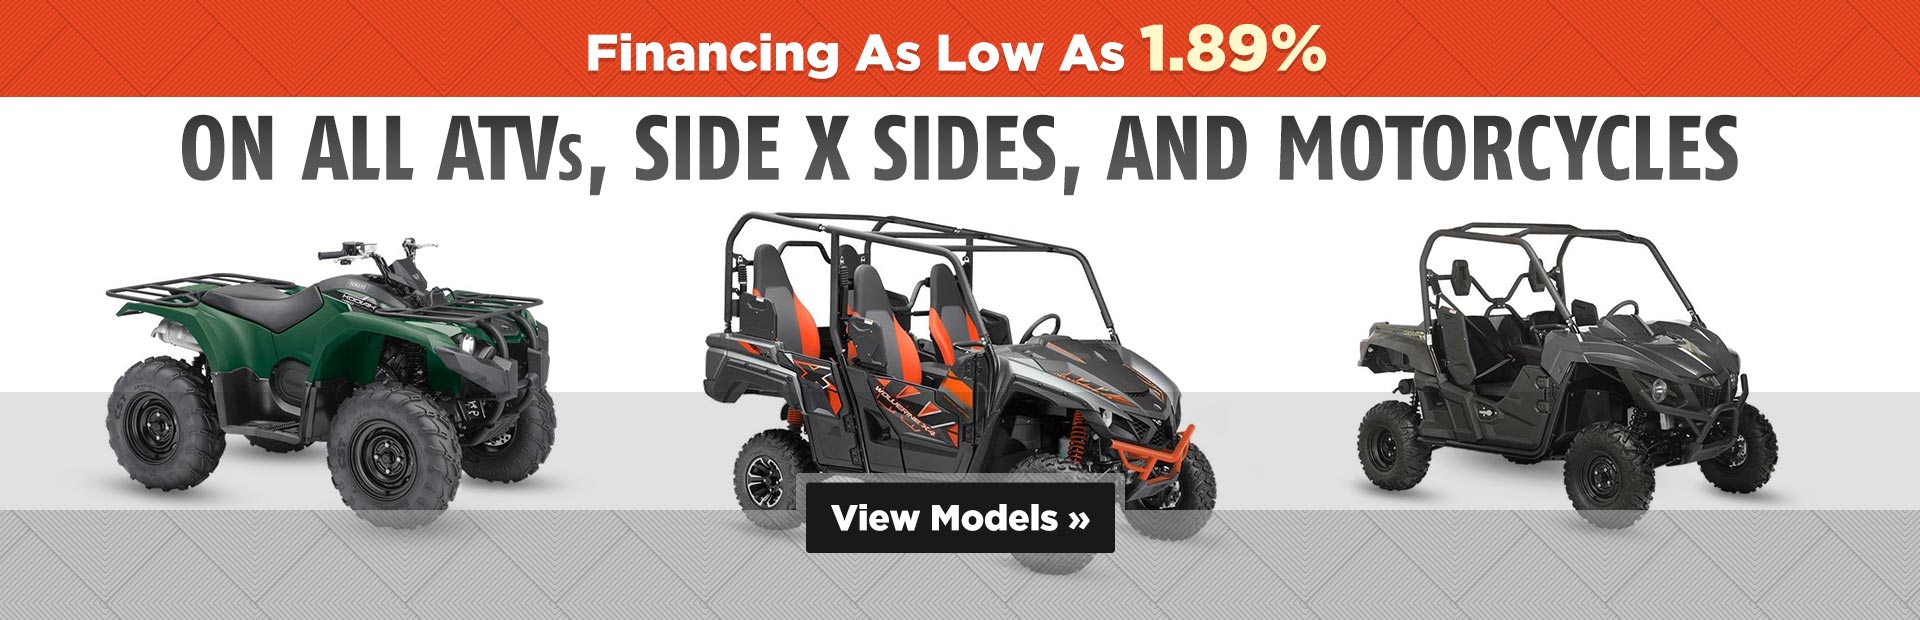 Get financing as low as 1.89% on all ATVs, side x sides, and motorcycles! Click here to view the models.